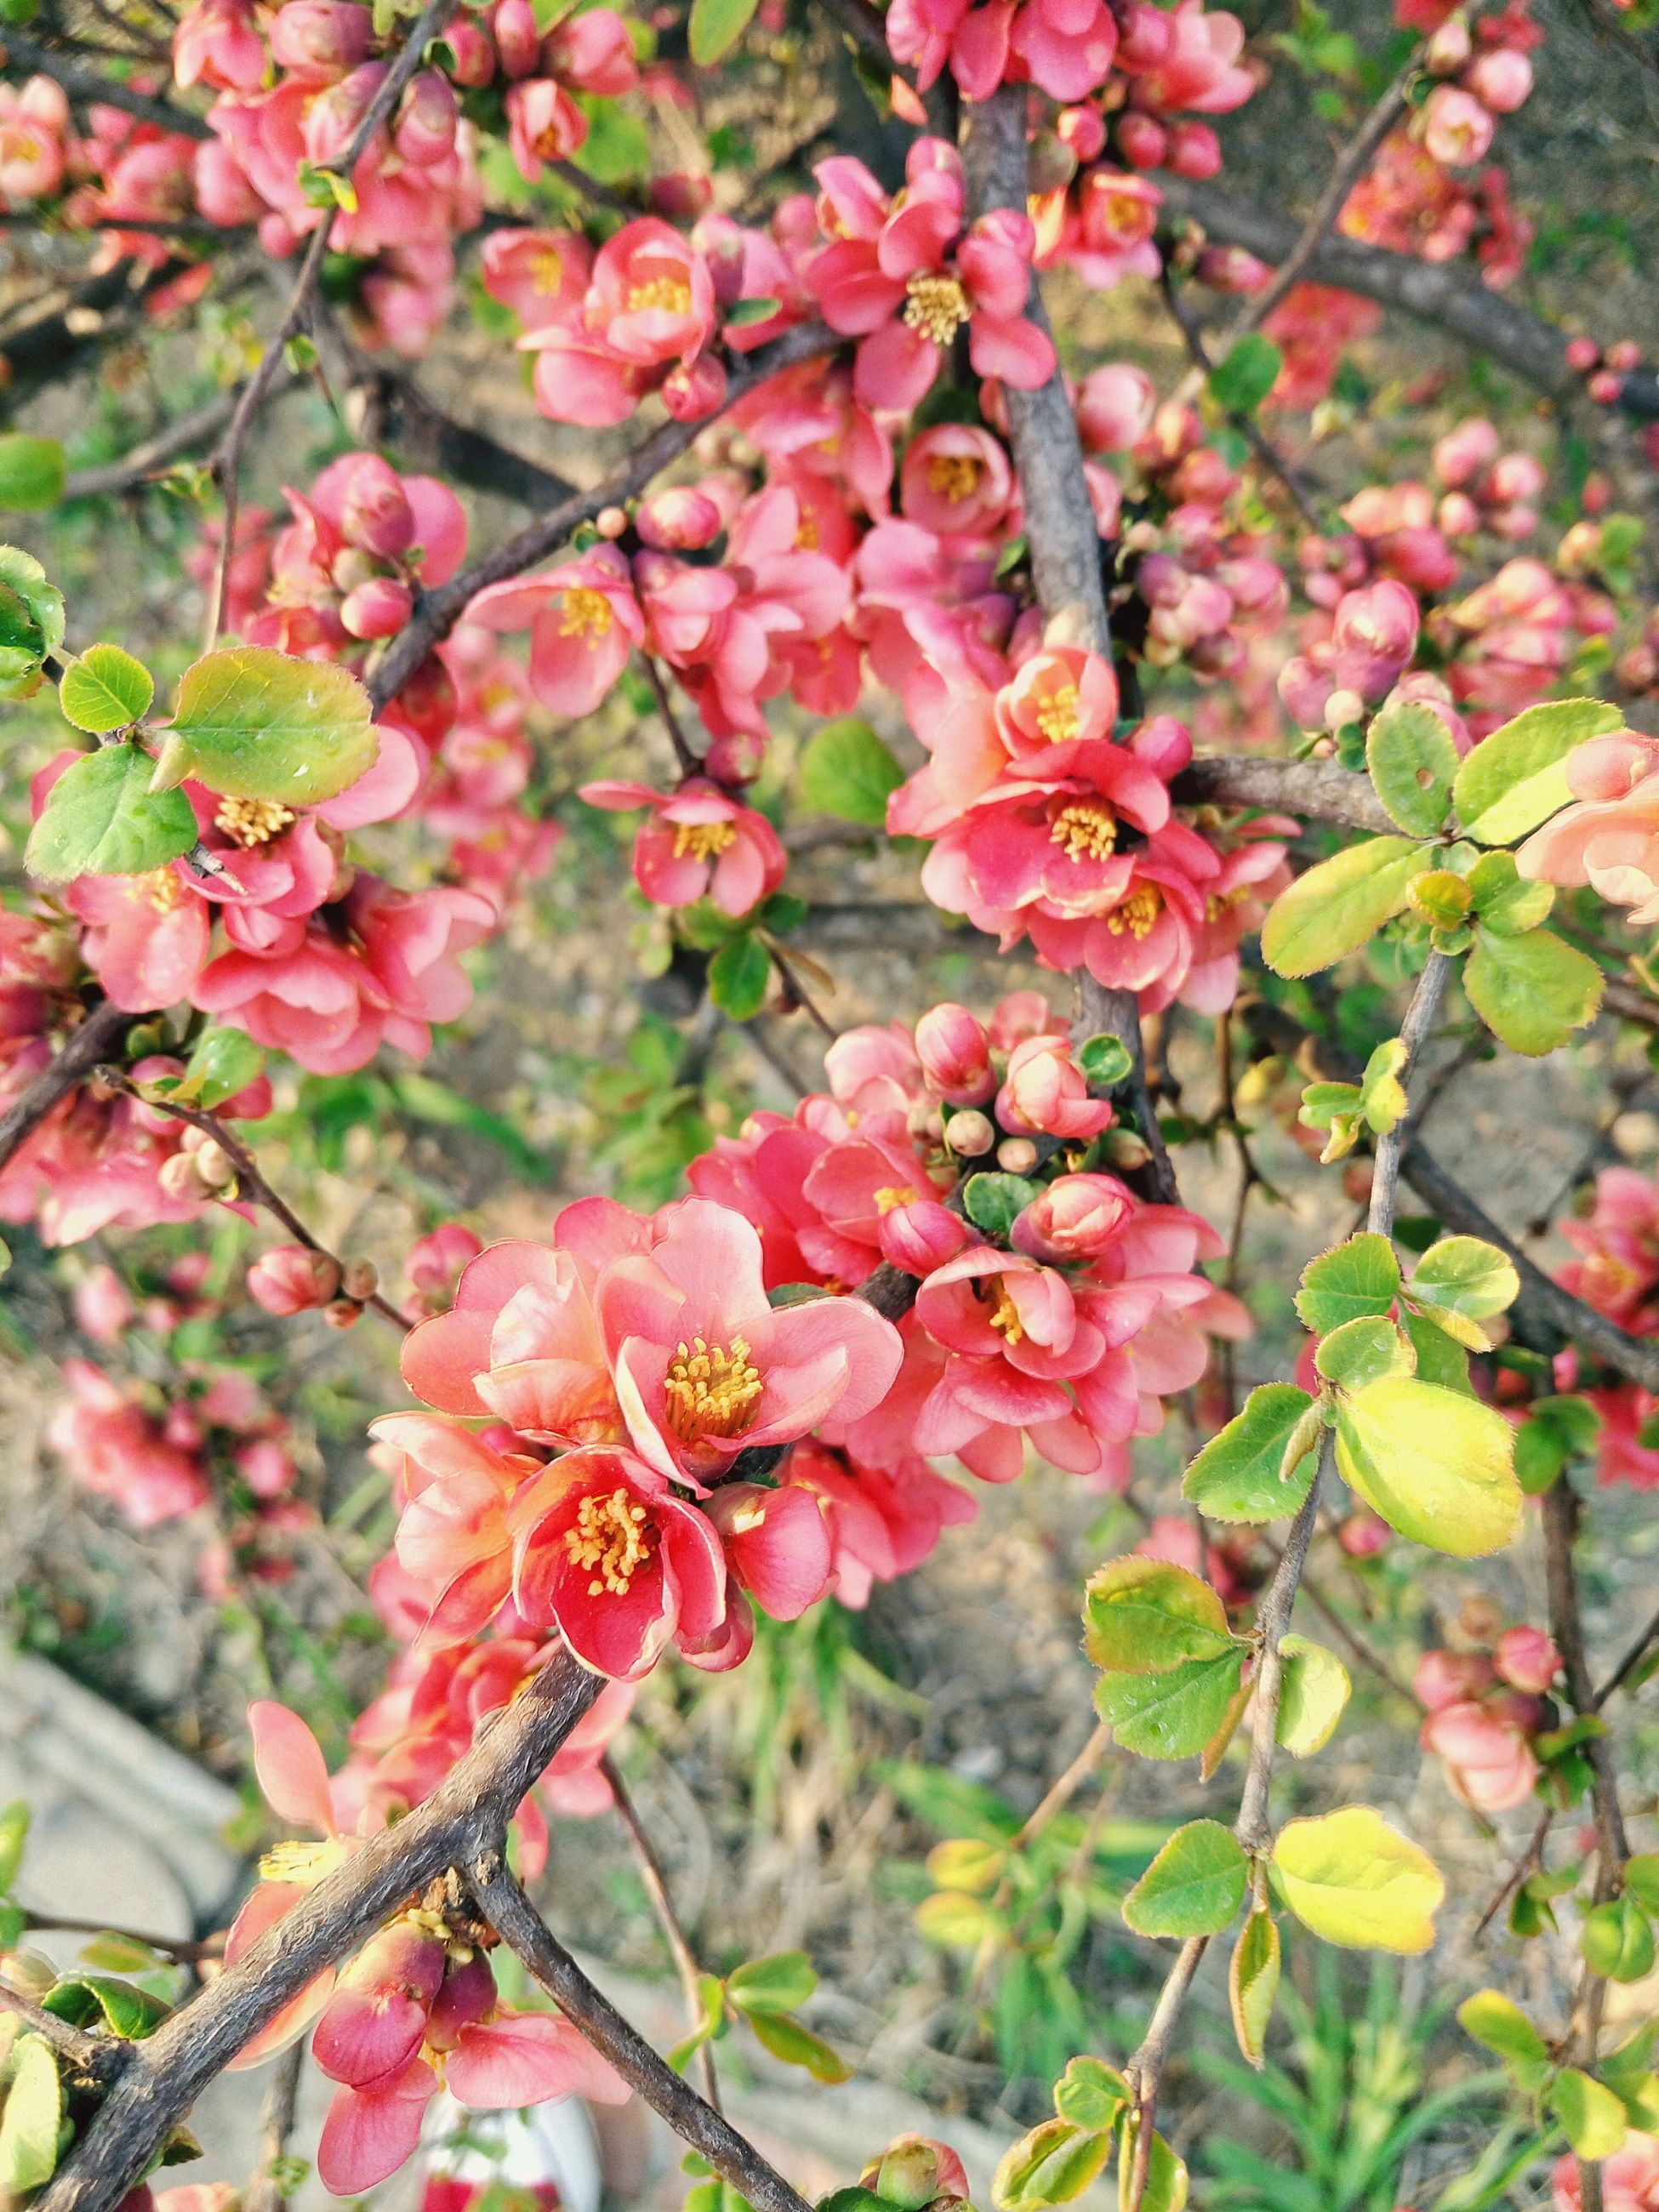 flower, freshness, growth, beauty in nature, fragility, pink color, branch, nature, petal, tree, blooming, plant, leaf, focus on foreground, blossom, close-up, in bloom, day, outdoors, springtime